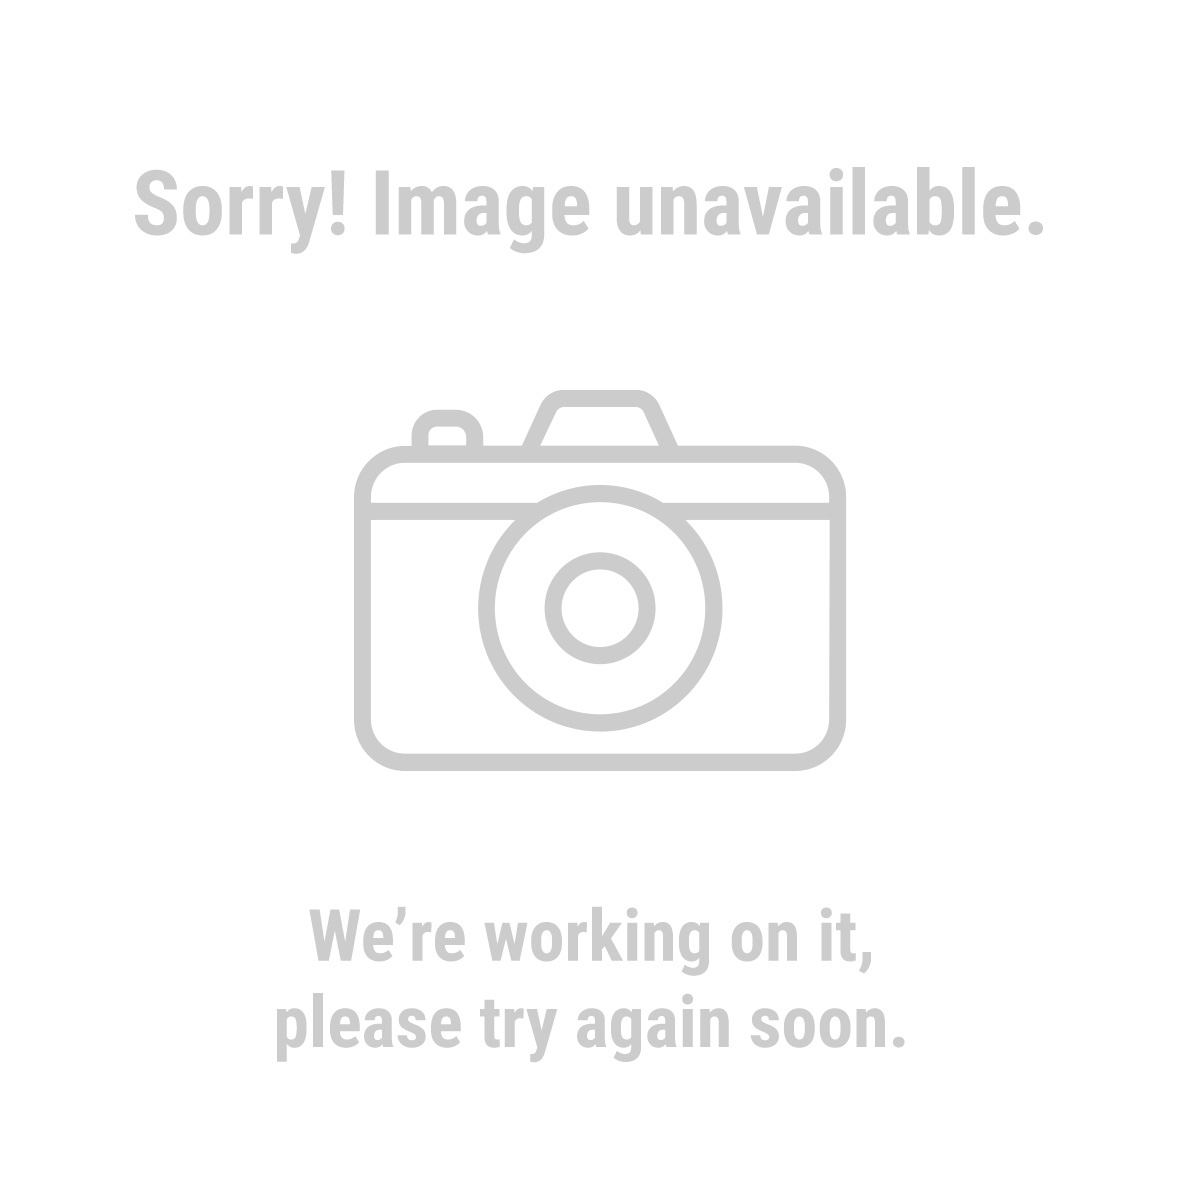 1-1/2 Horsepower Compressor Duty Motor